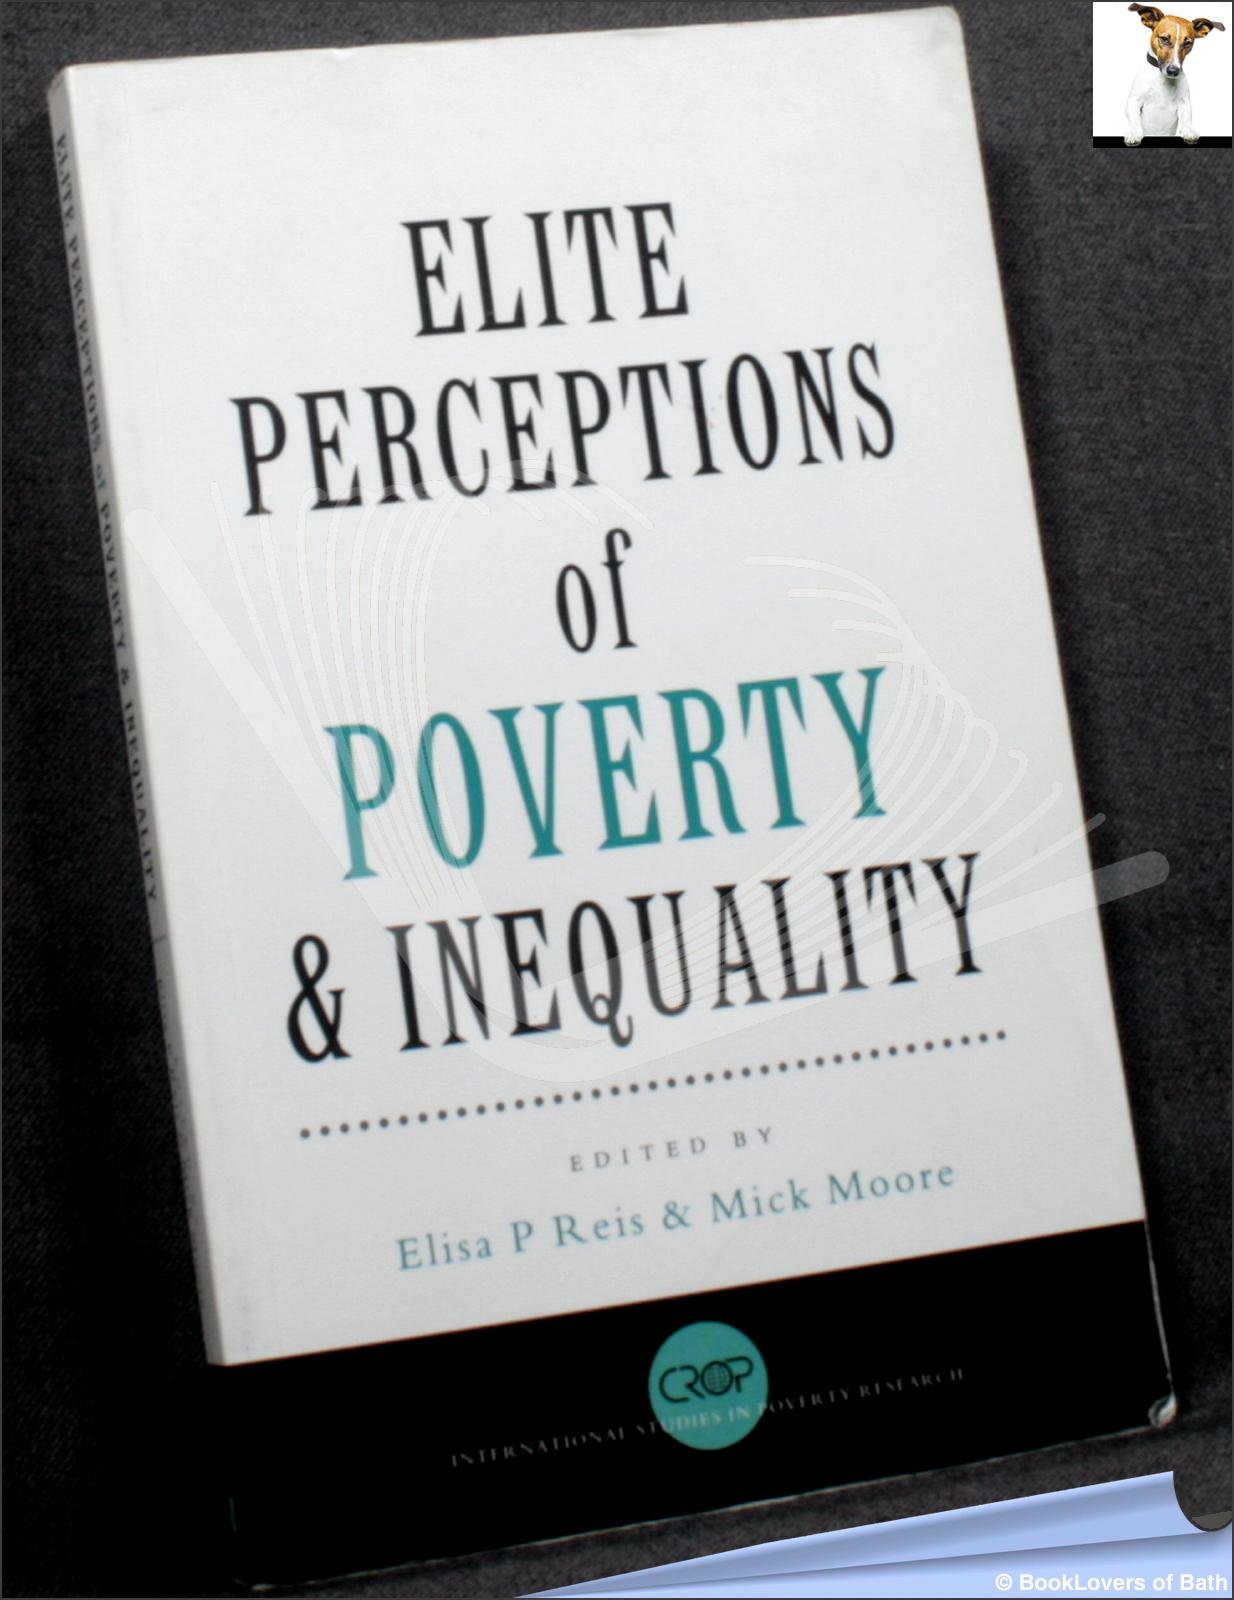 Elite Perceptions of Poverty and Inequality - Edited by Elisa P. Reis & Mick Moore